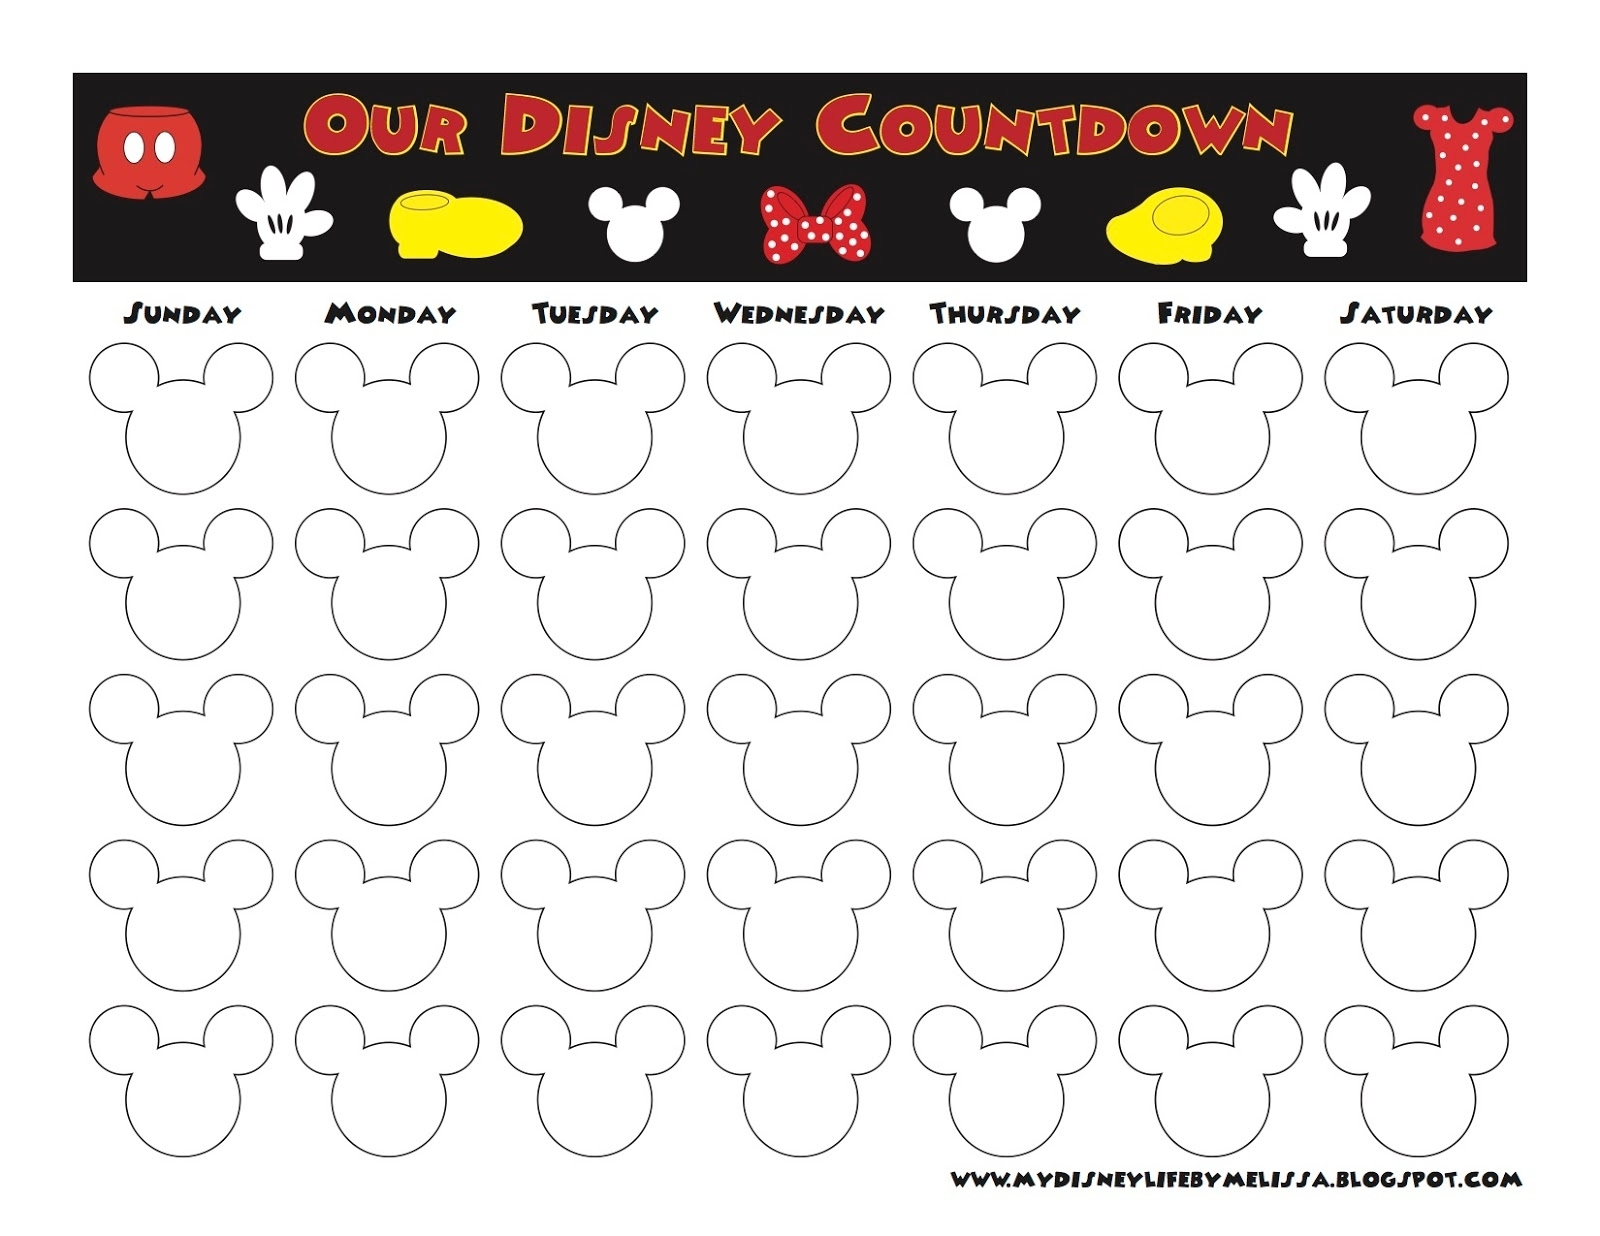 Disney Countdown Calendar Template | Monthly Printable Calender in Disney World Countdown Calendar Printable